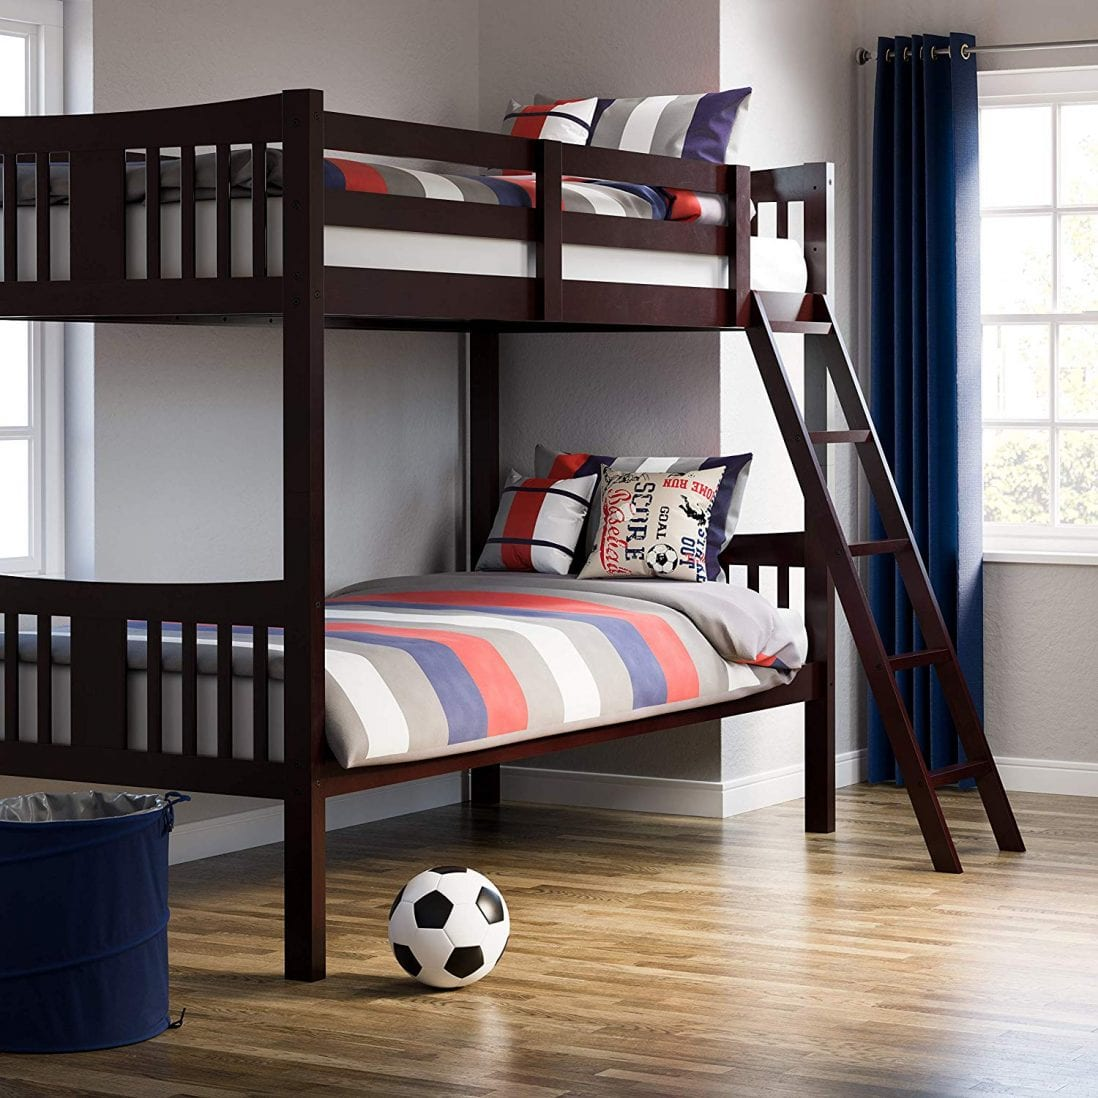 Storkcraft the best bunk bed overall review and buying guide by www.dailysleep.org